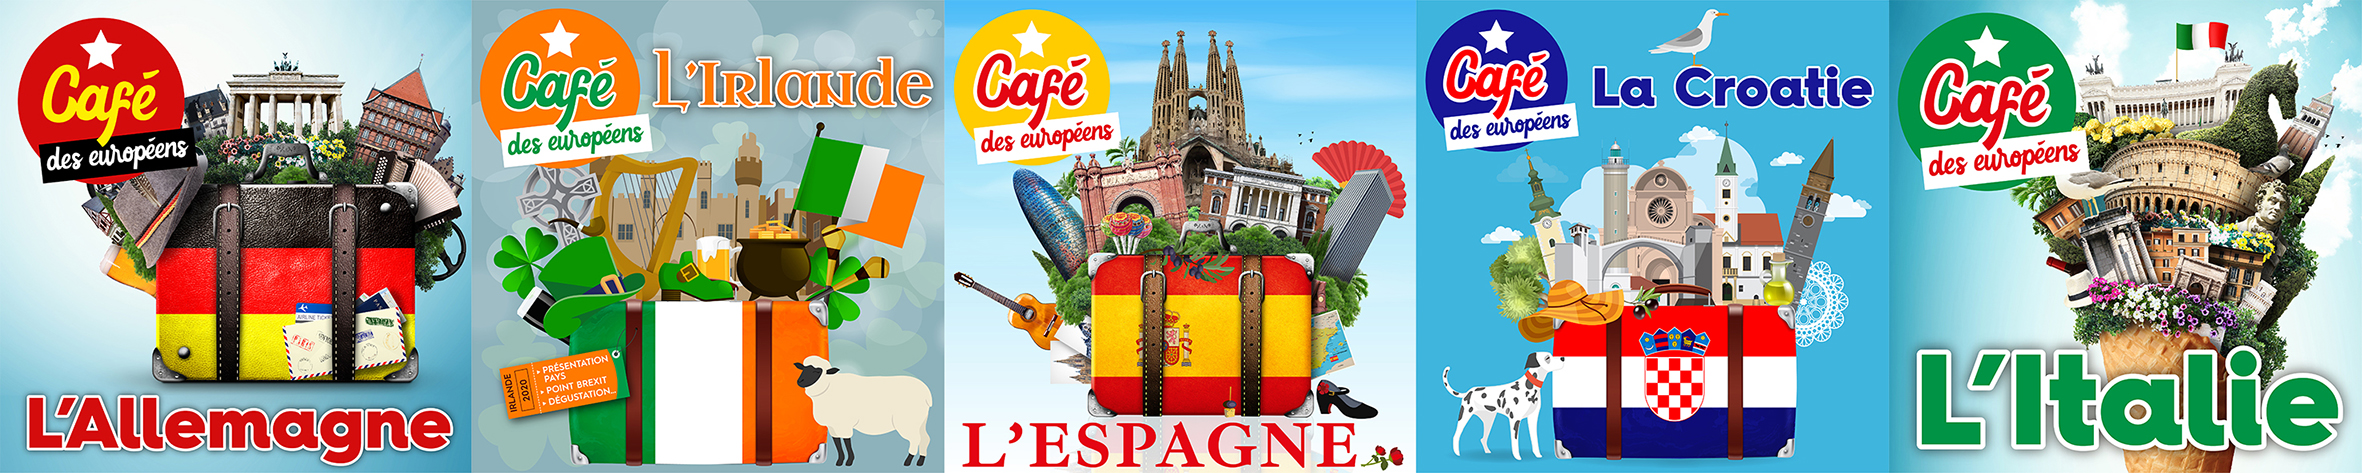 Frise Cafes Europeens